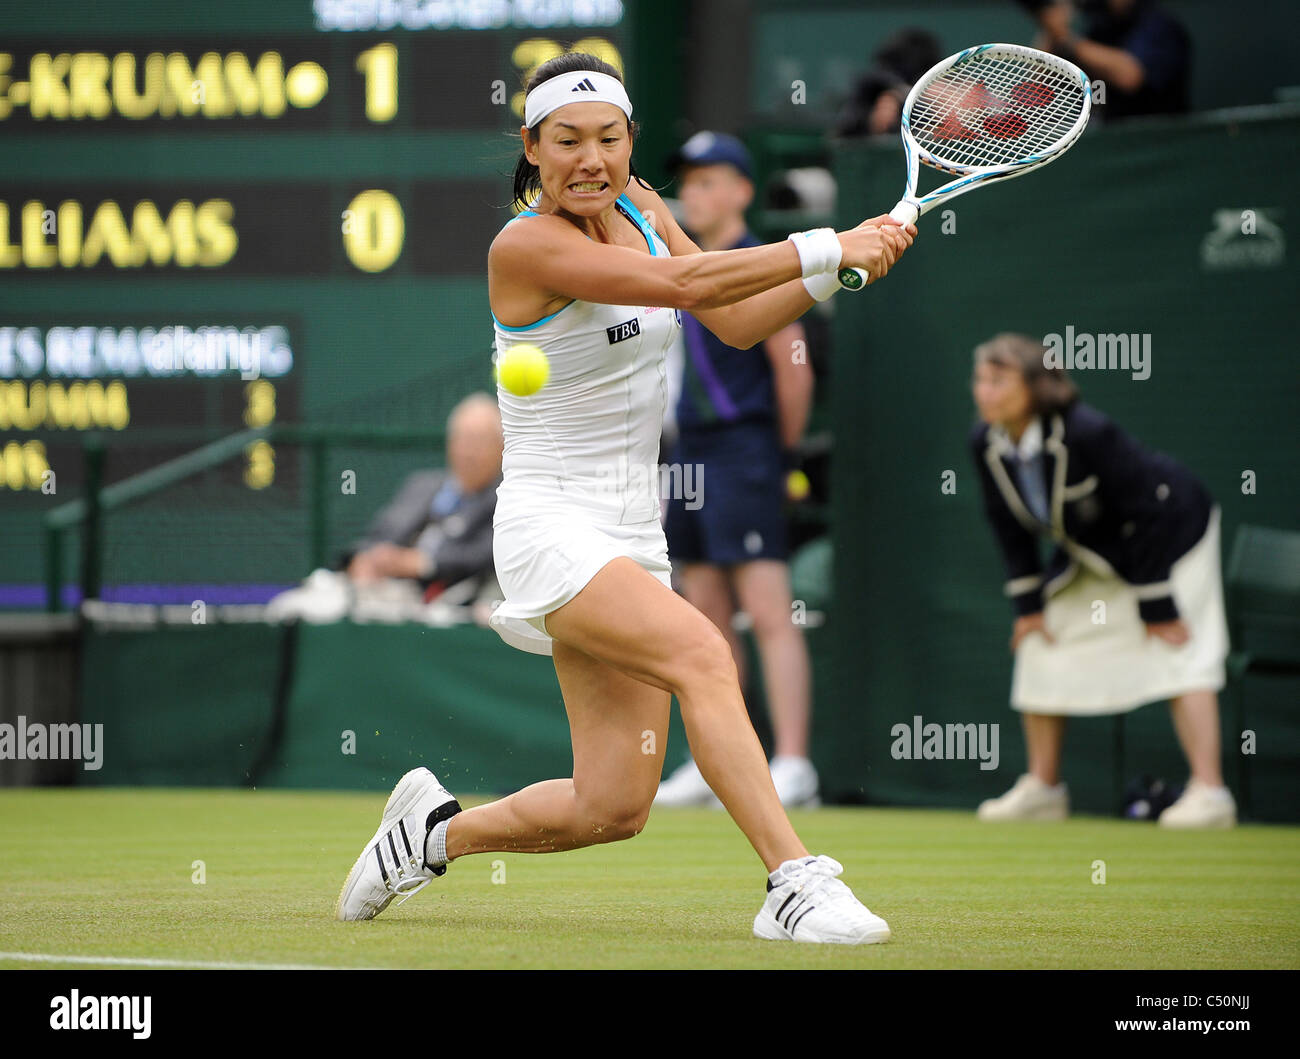 wimbledon dating site St louis (lalate) – wimbledon 2016 results continue first round action today for women's singles and men's singles several key games on the wimbledon schedule head to the courts within moments this morning june 28, 2016 for first round action.